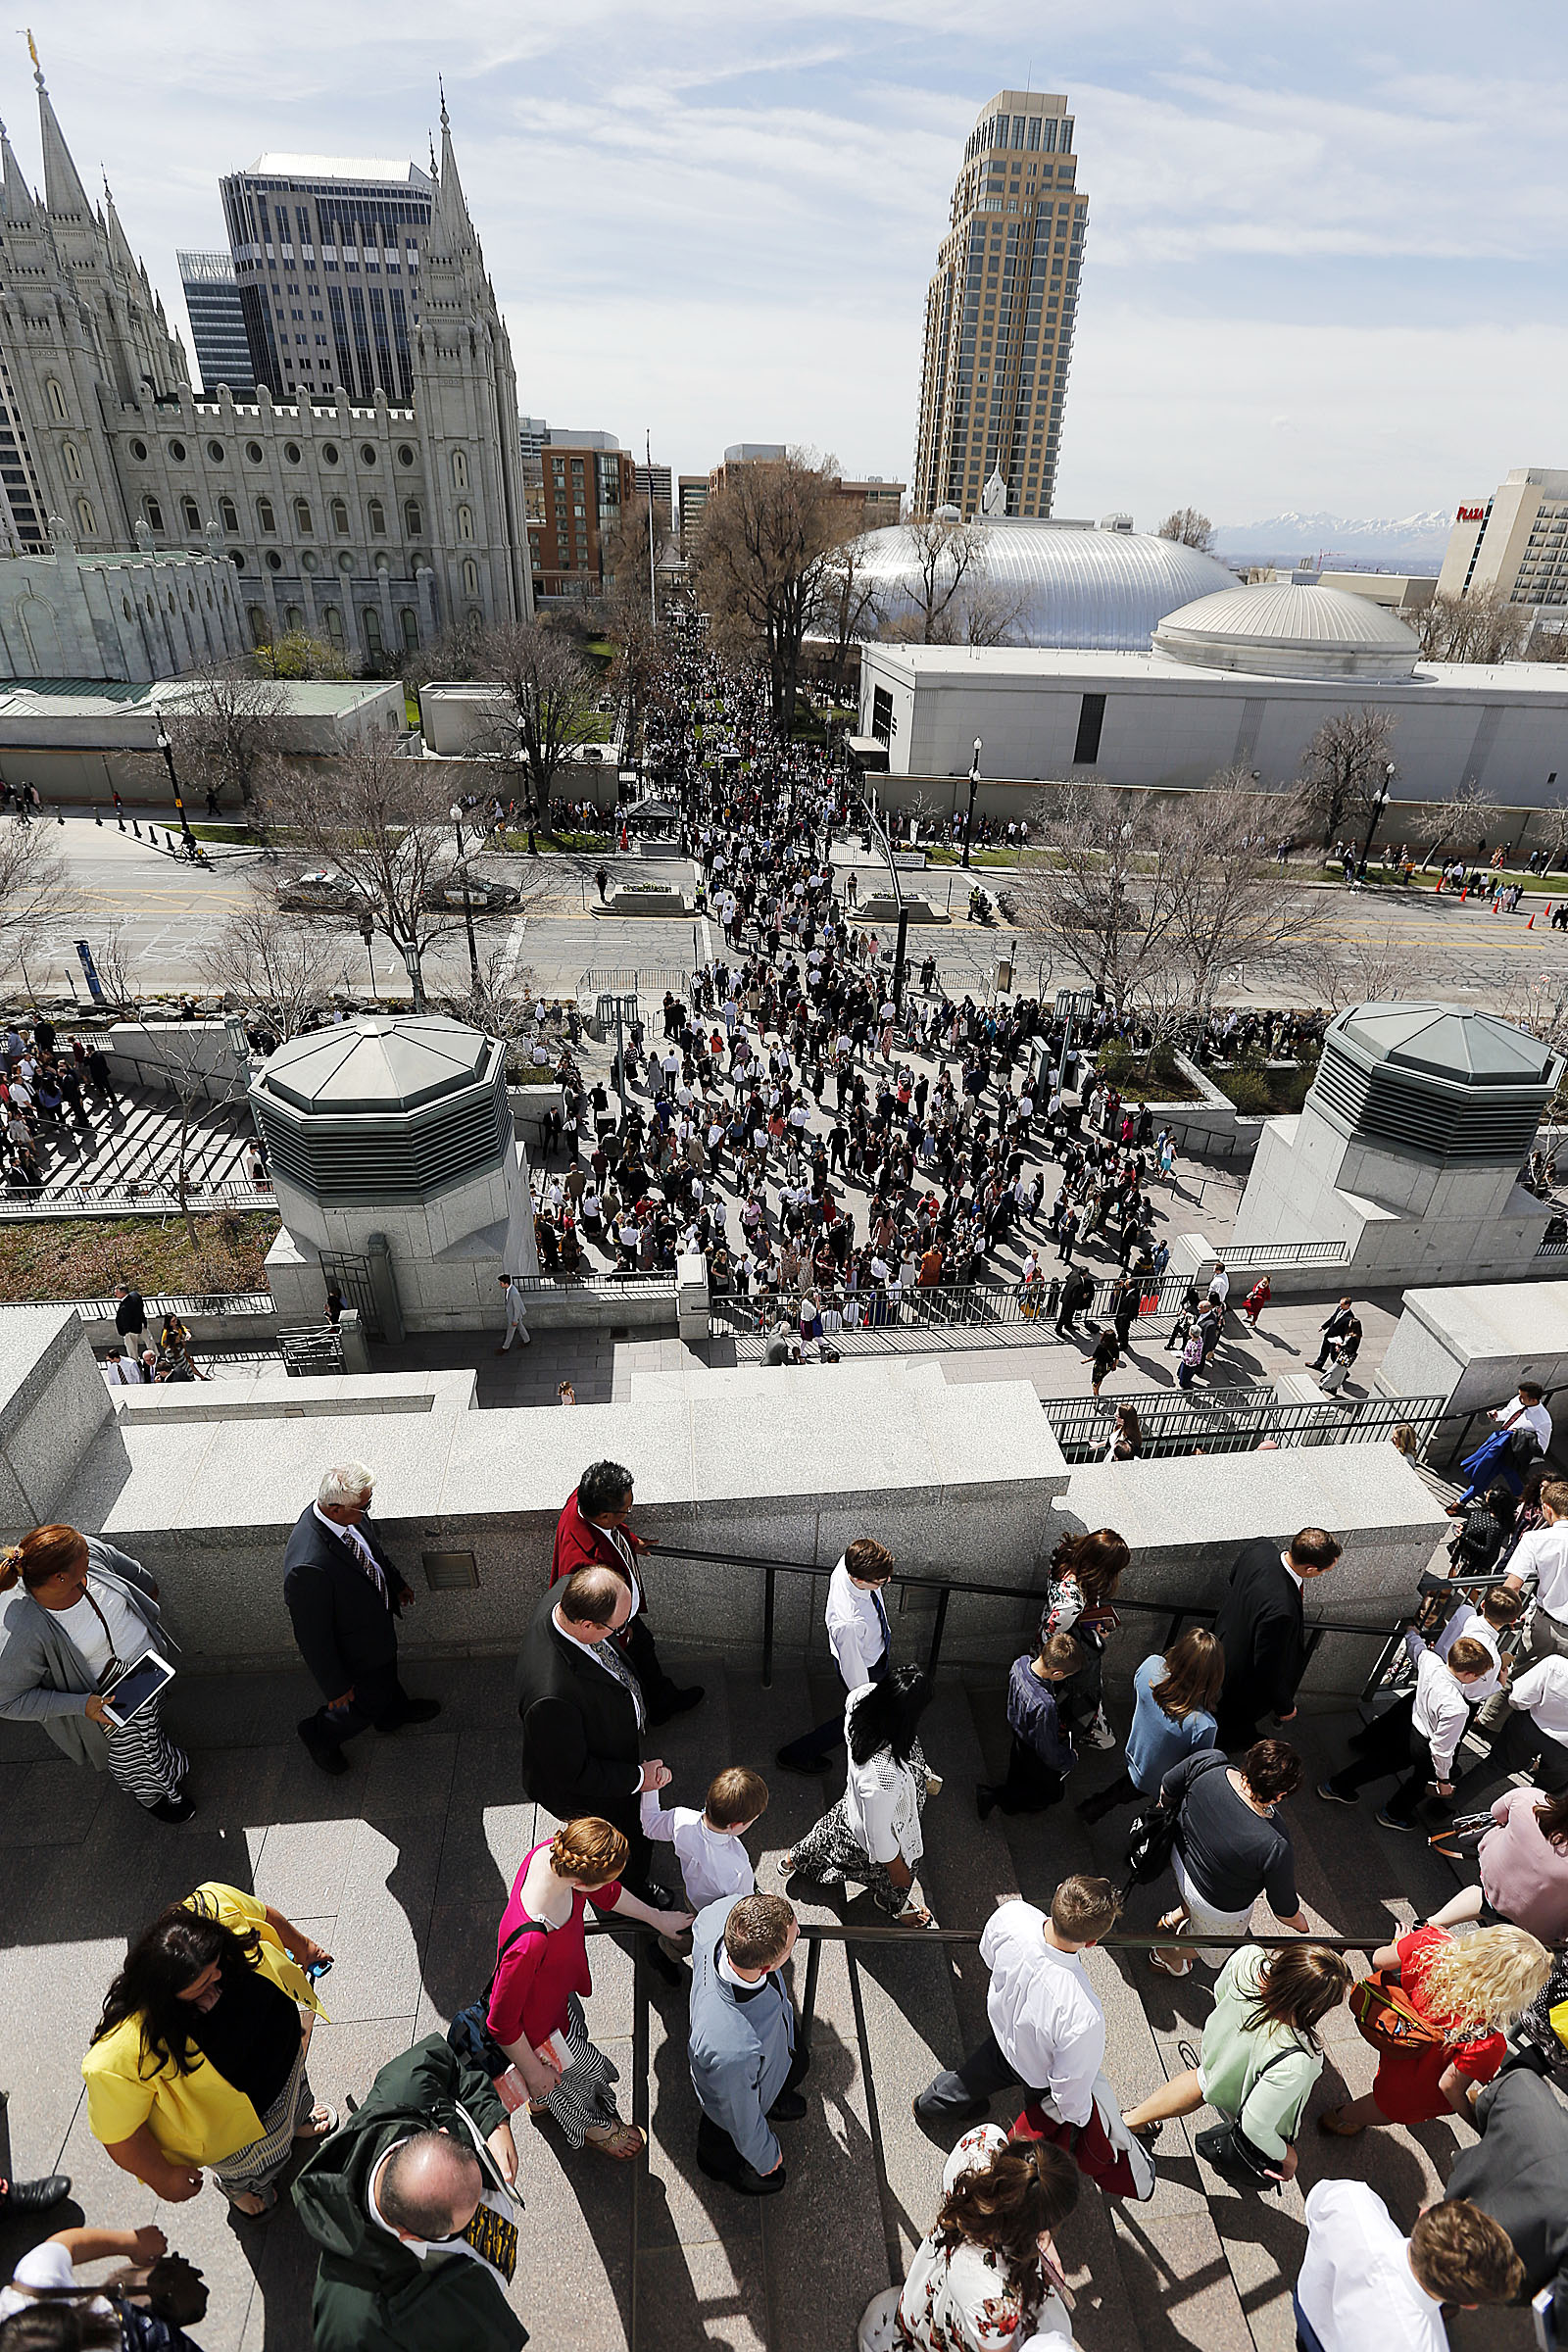 Conferencegoers leave the Conference Center following the Saturday morning session of The Church of Jesus Christ of Latter-day Saints' 188th Annual General Conference in Salt Lake City on Saturday, March 31, 2018.